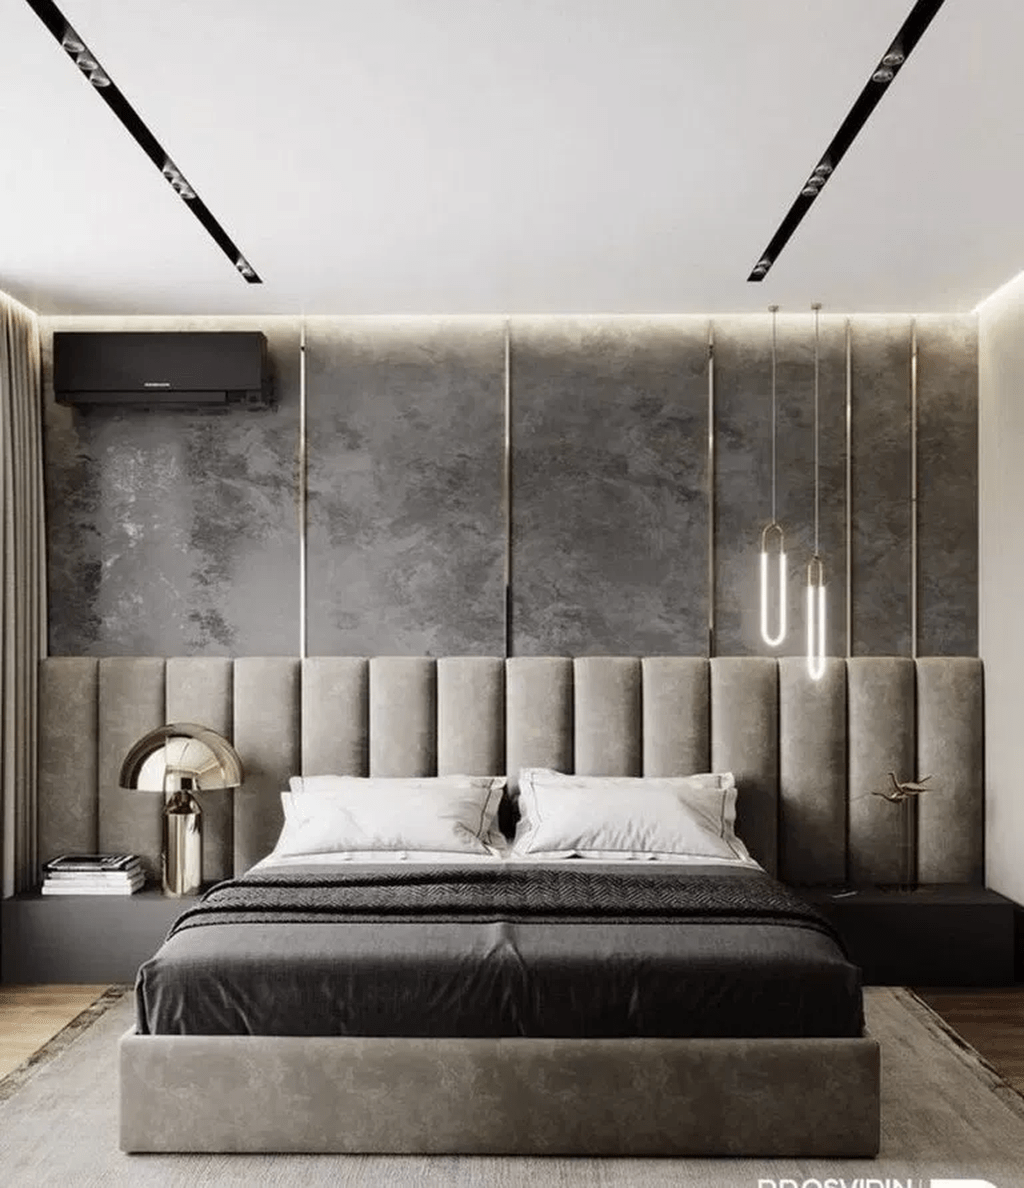 38 Incredible Contemporary Master Bedroom Design Ideas - HOMEPIEZ